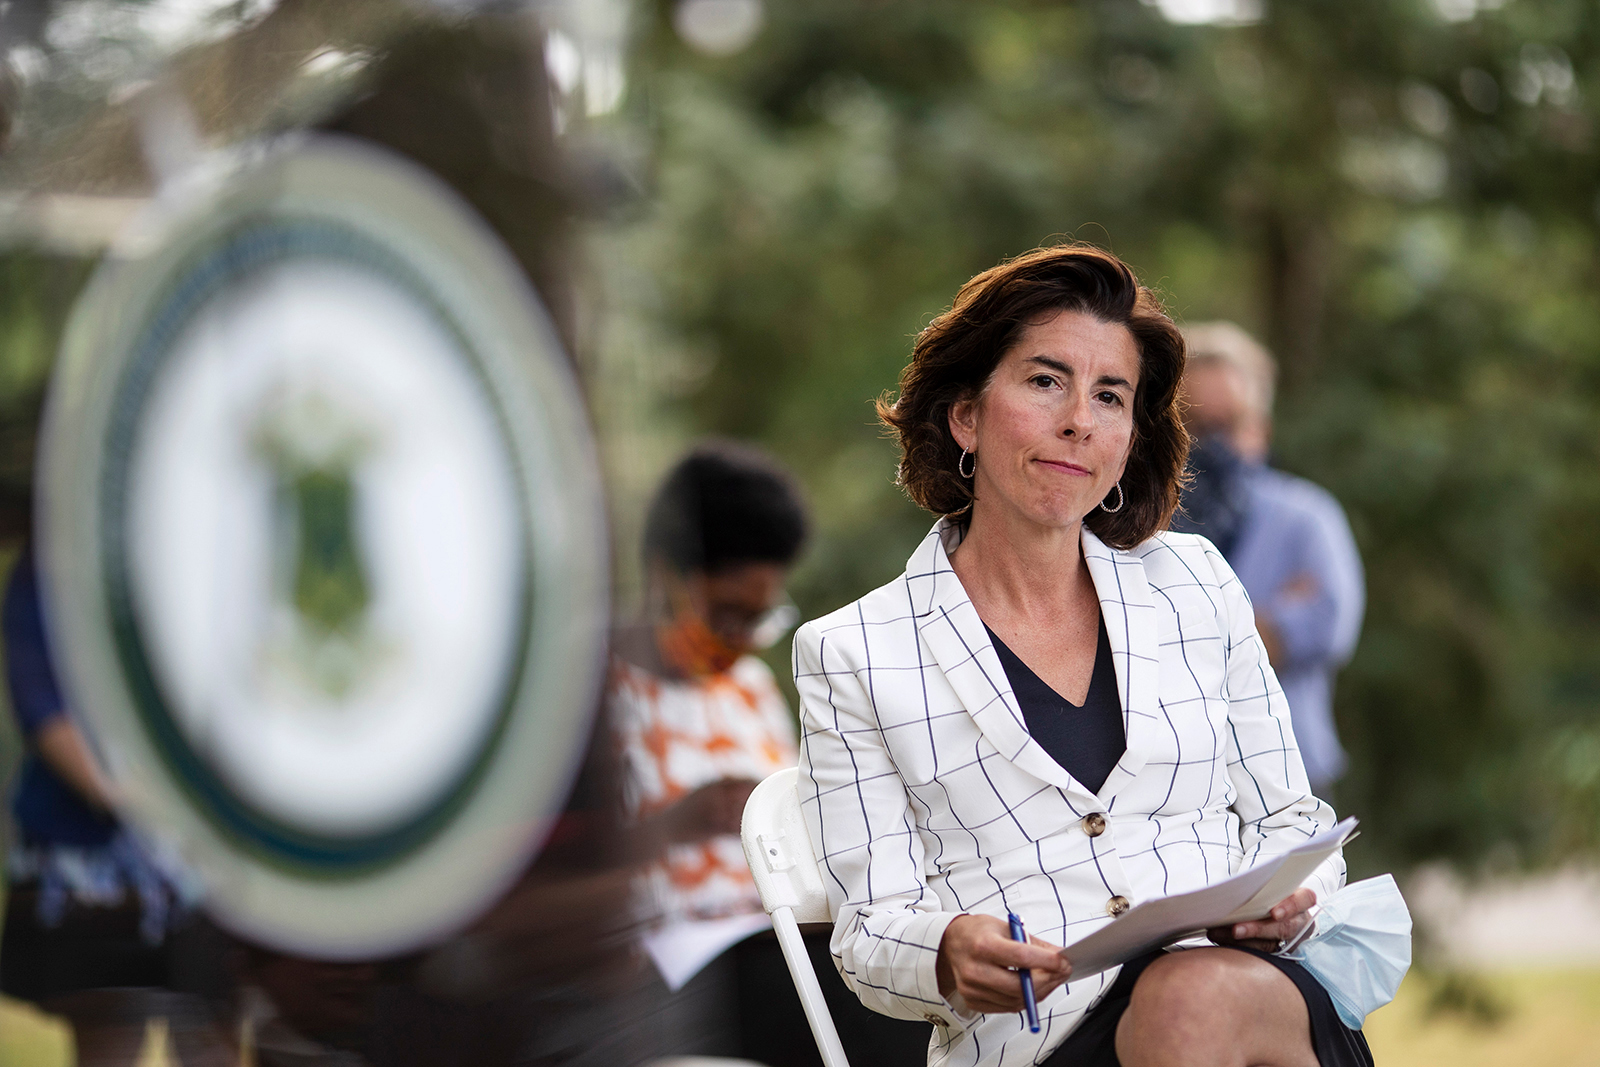 Rhode Island Gov. Gina Raimondo sits during a news conference Monday, June 22, in Providence, Rhode Island.